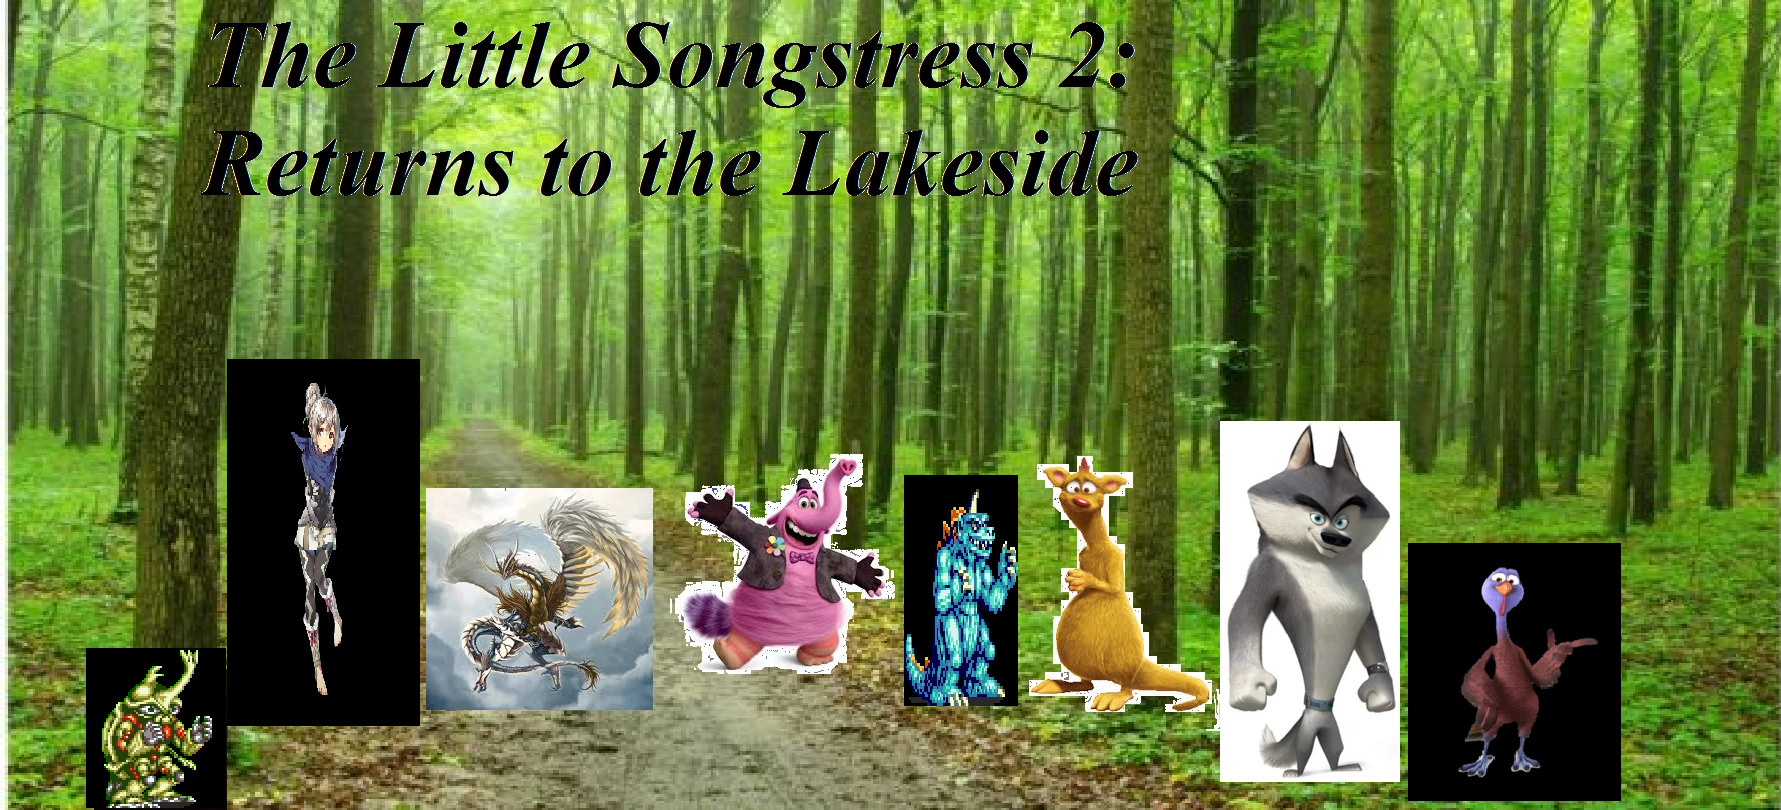 The Little Songstress 2: Returns to the Lakeside